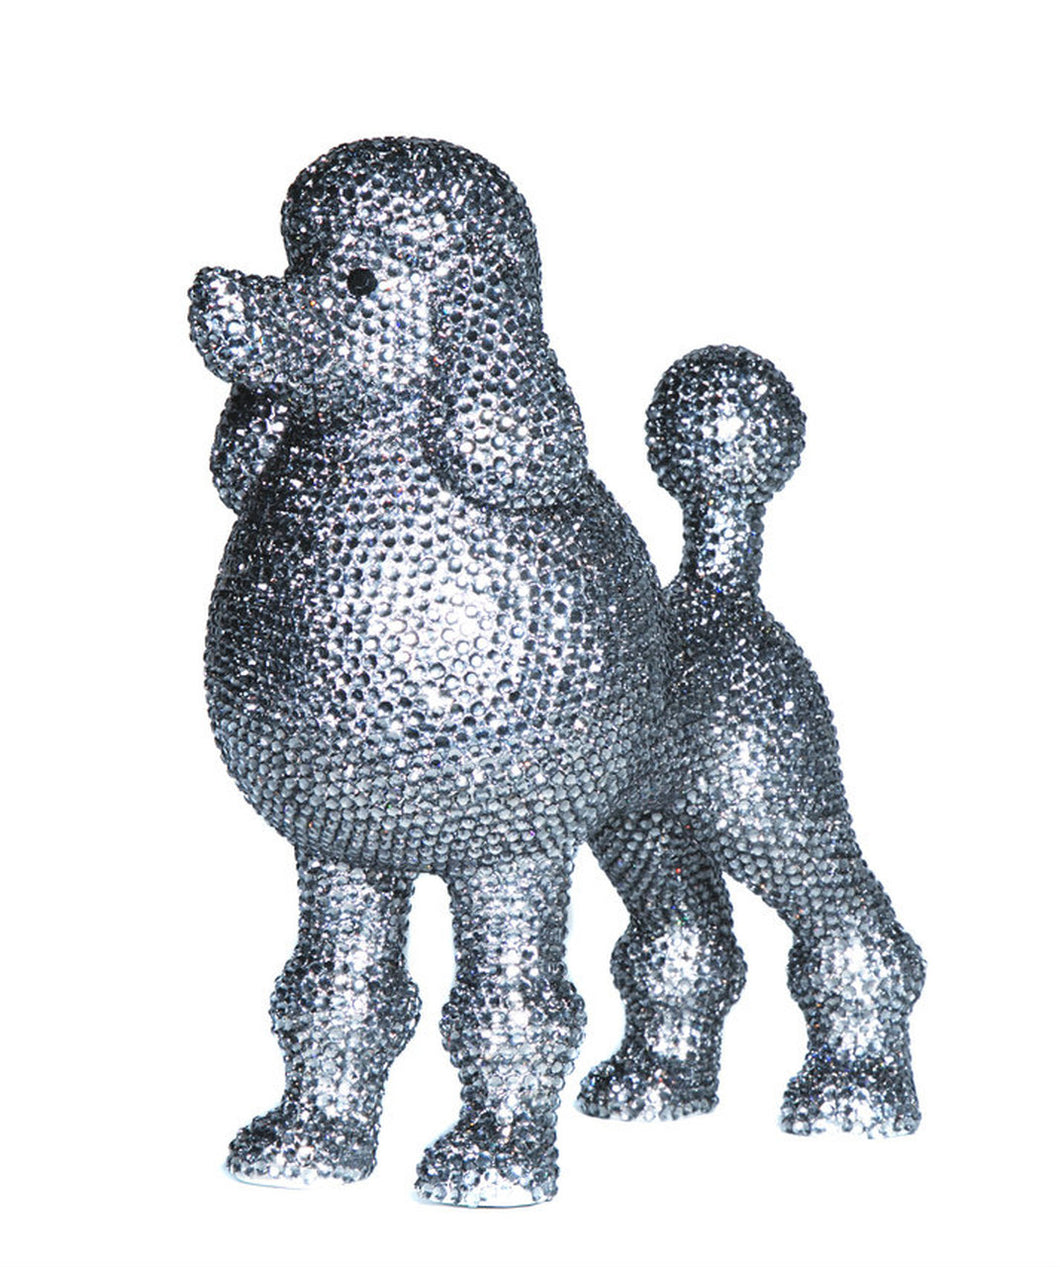 Interior Illusions Plus Graphite Rhinestone Poodle Decoration - 11